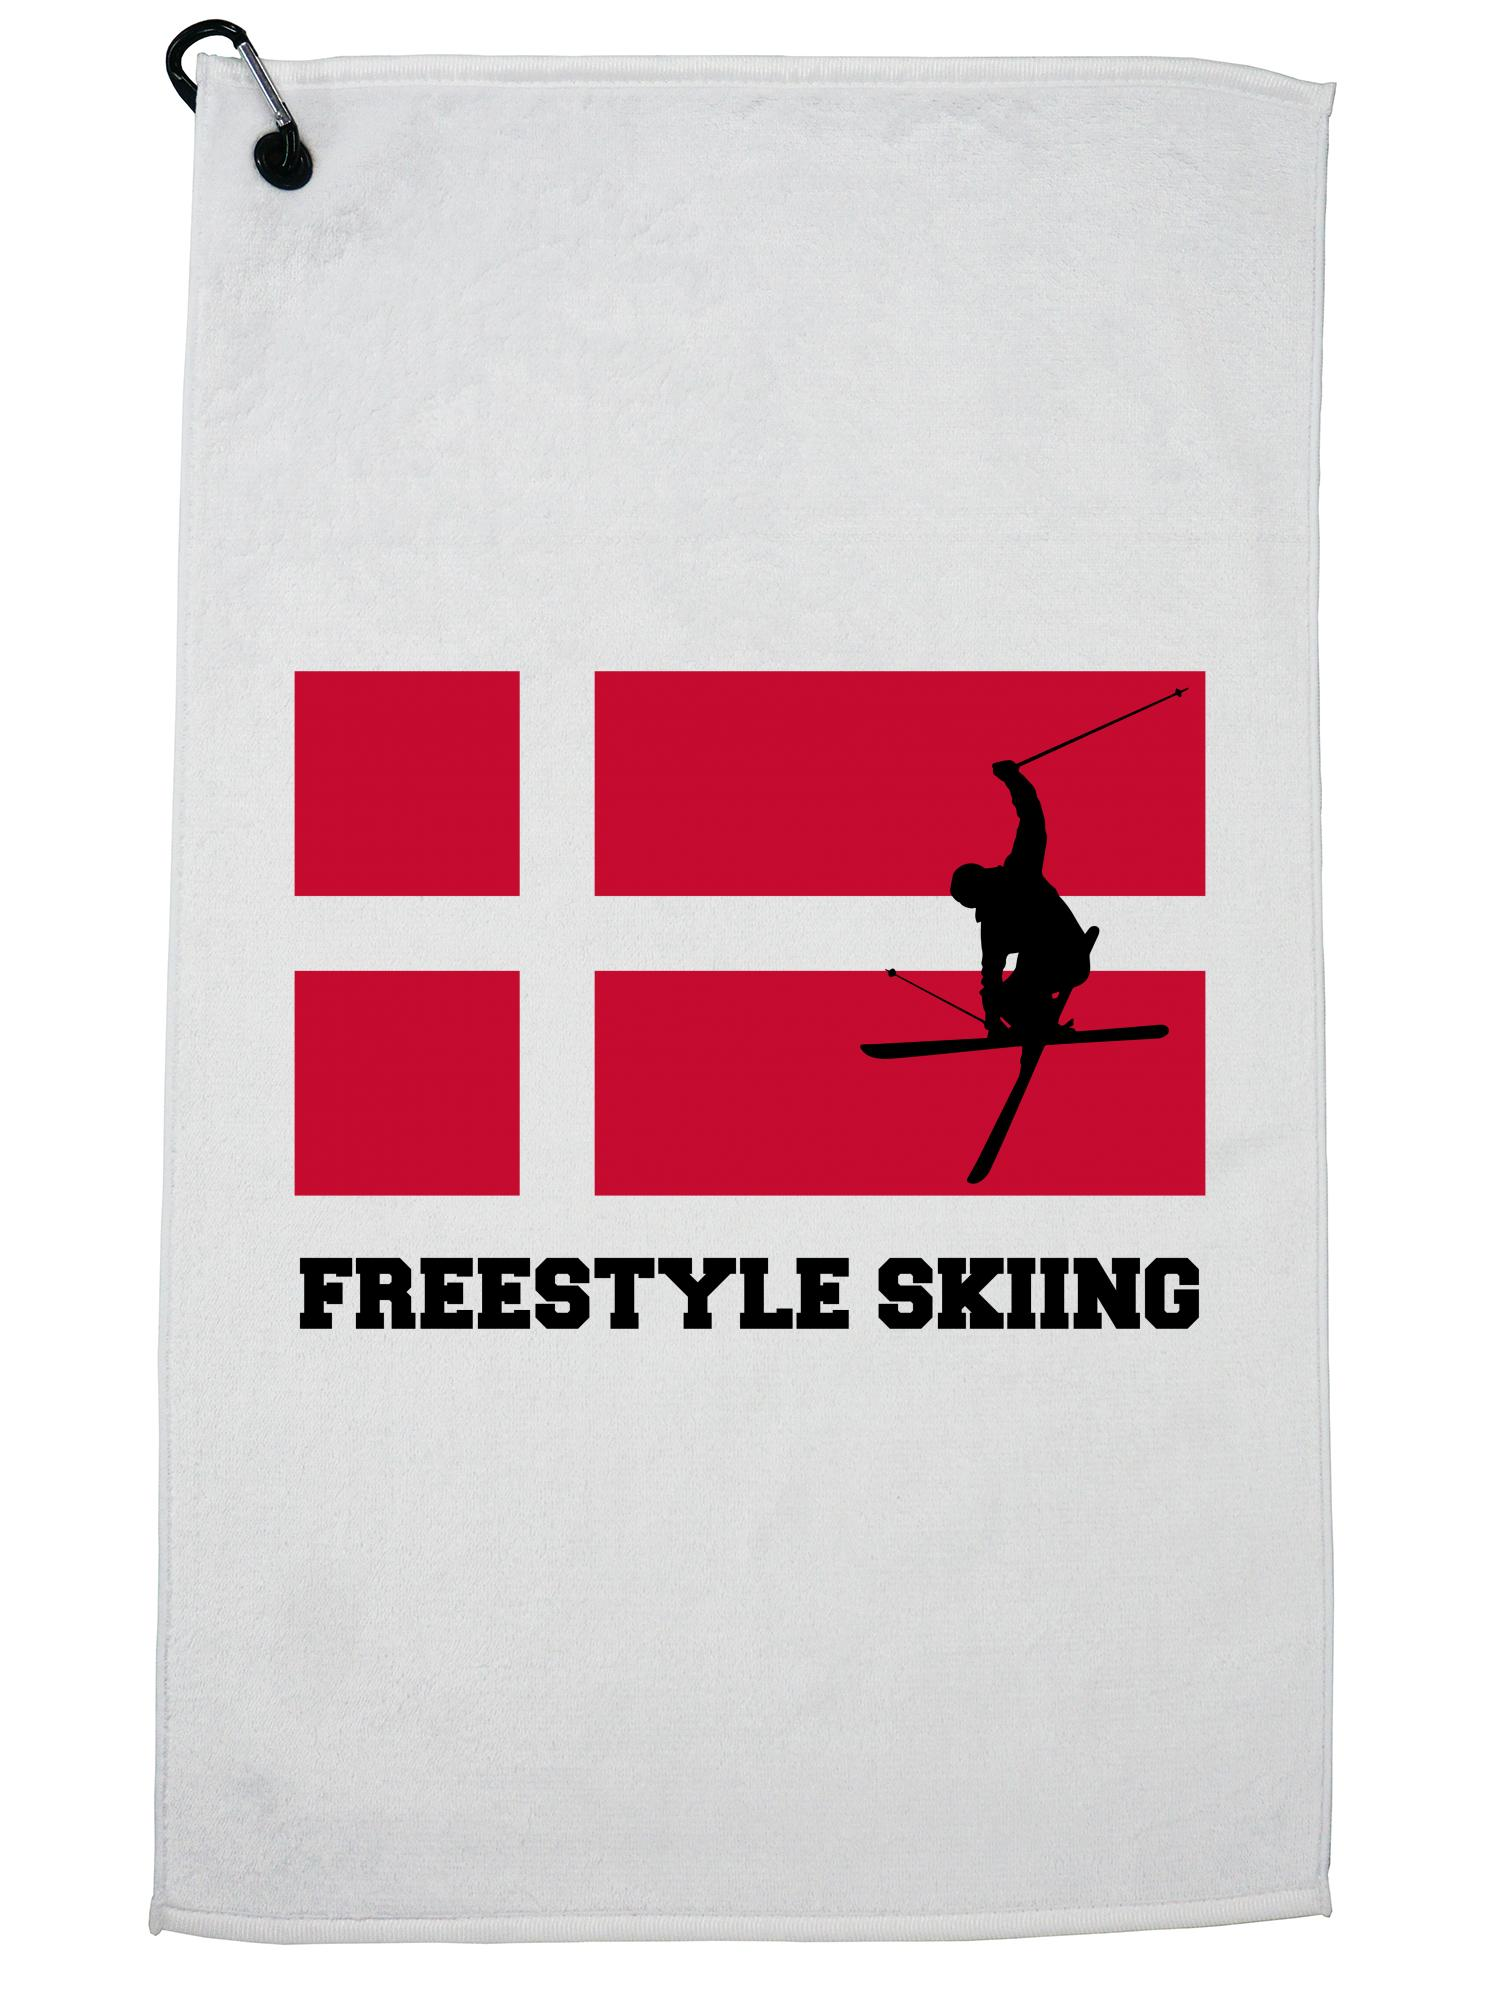 Denmark Olympic Freestyle Skiing Flag Silhouette Golf Towel with Carabiner Clip by Hollywood Thread